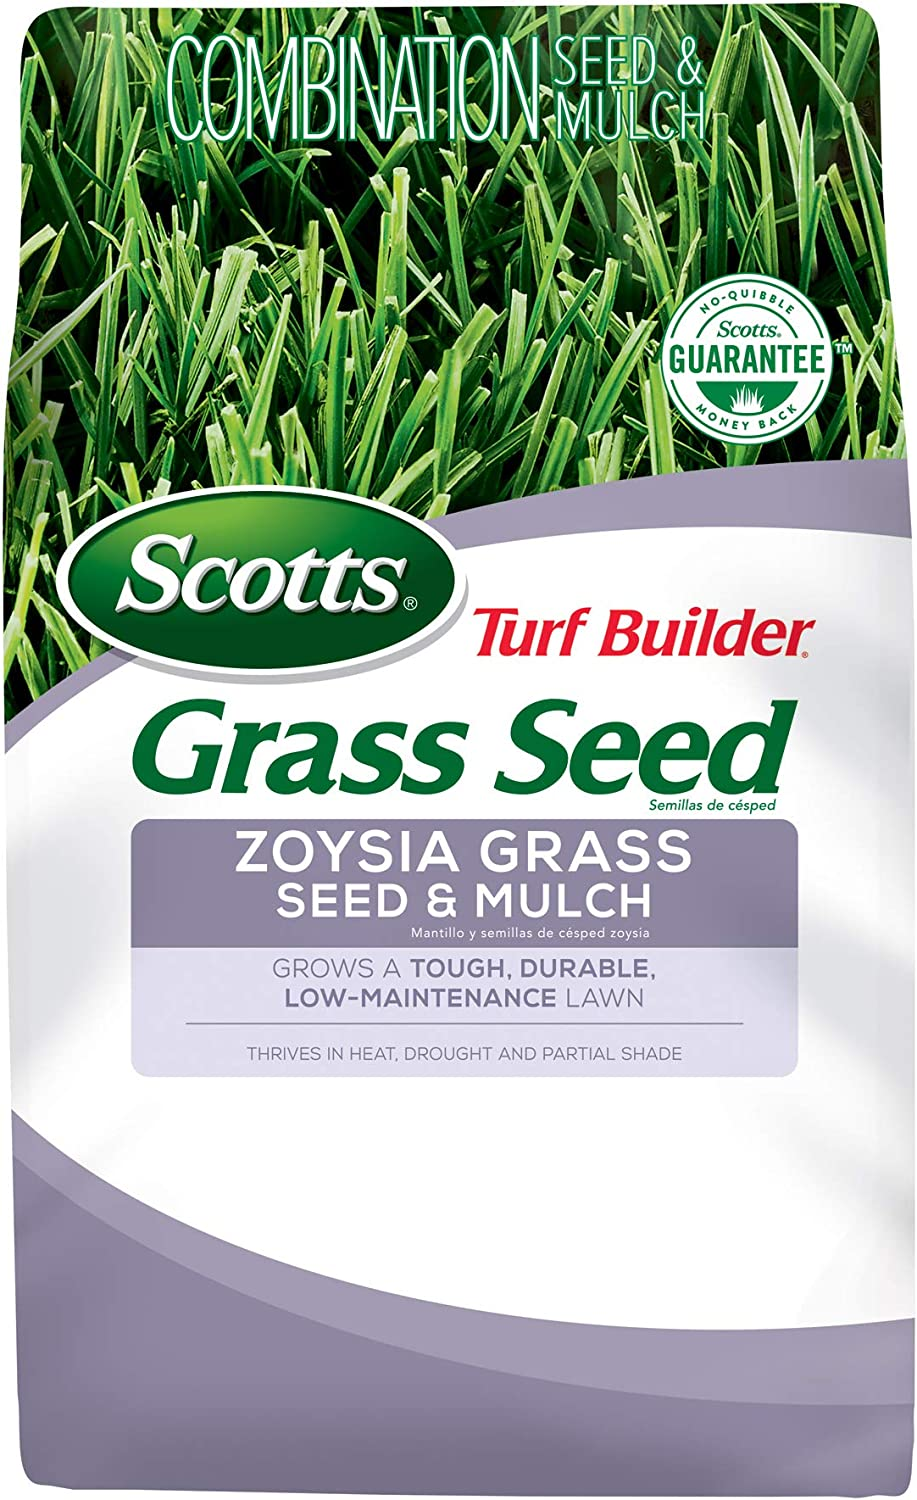 Scotts Turf Builder Grass Seed Zoysia Grass Seed and Mulch, 5 lb. - Full Sun and Light Shade - Thrives in Heat & Drought - Grows a Tough, Durable, Low-Maintenance Lawn - Seeds up to 2, 000 sq. ft. : Grass Plants : Garden & Outdoor